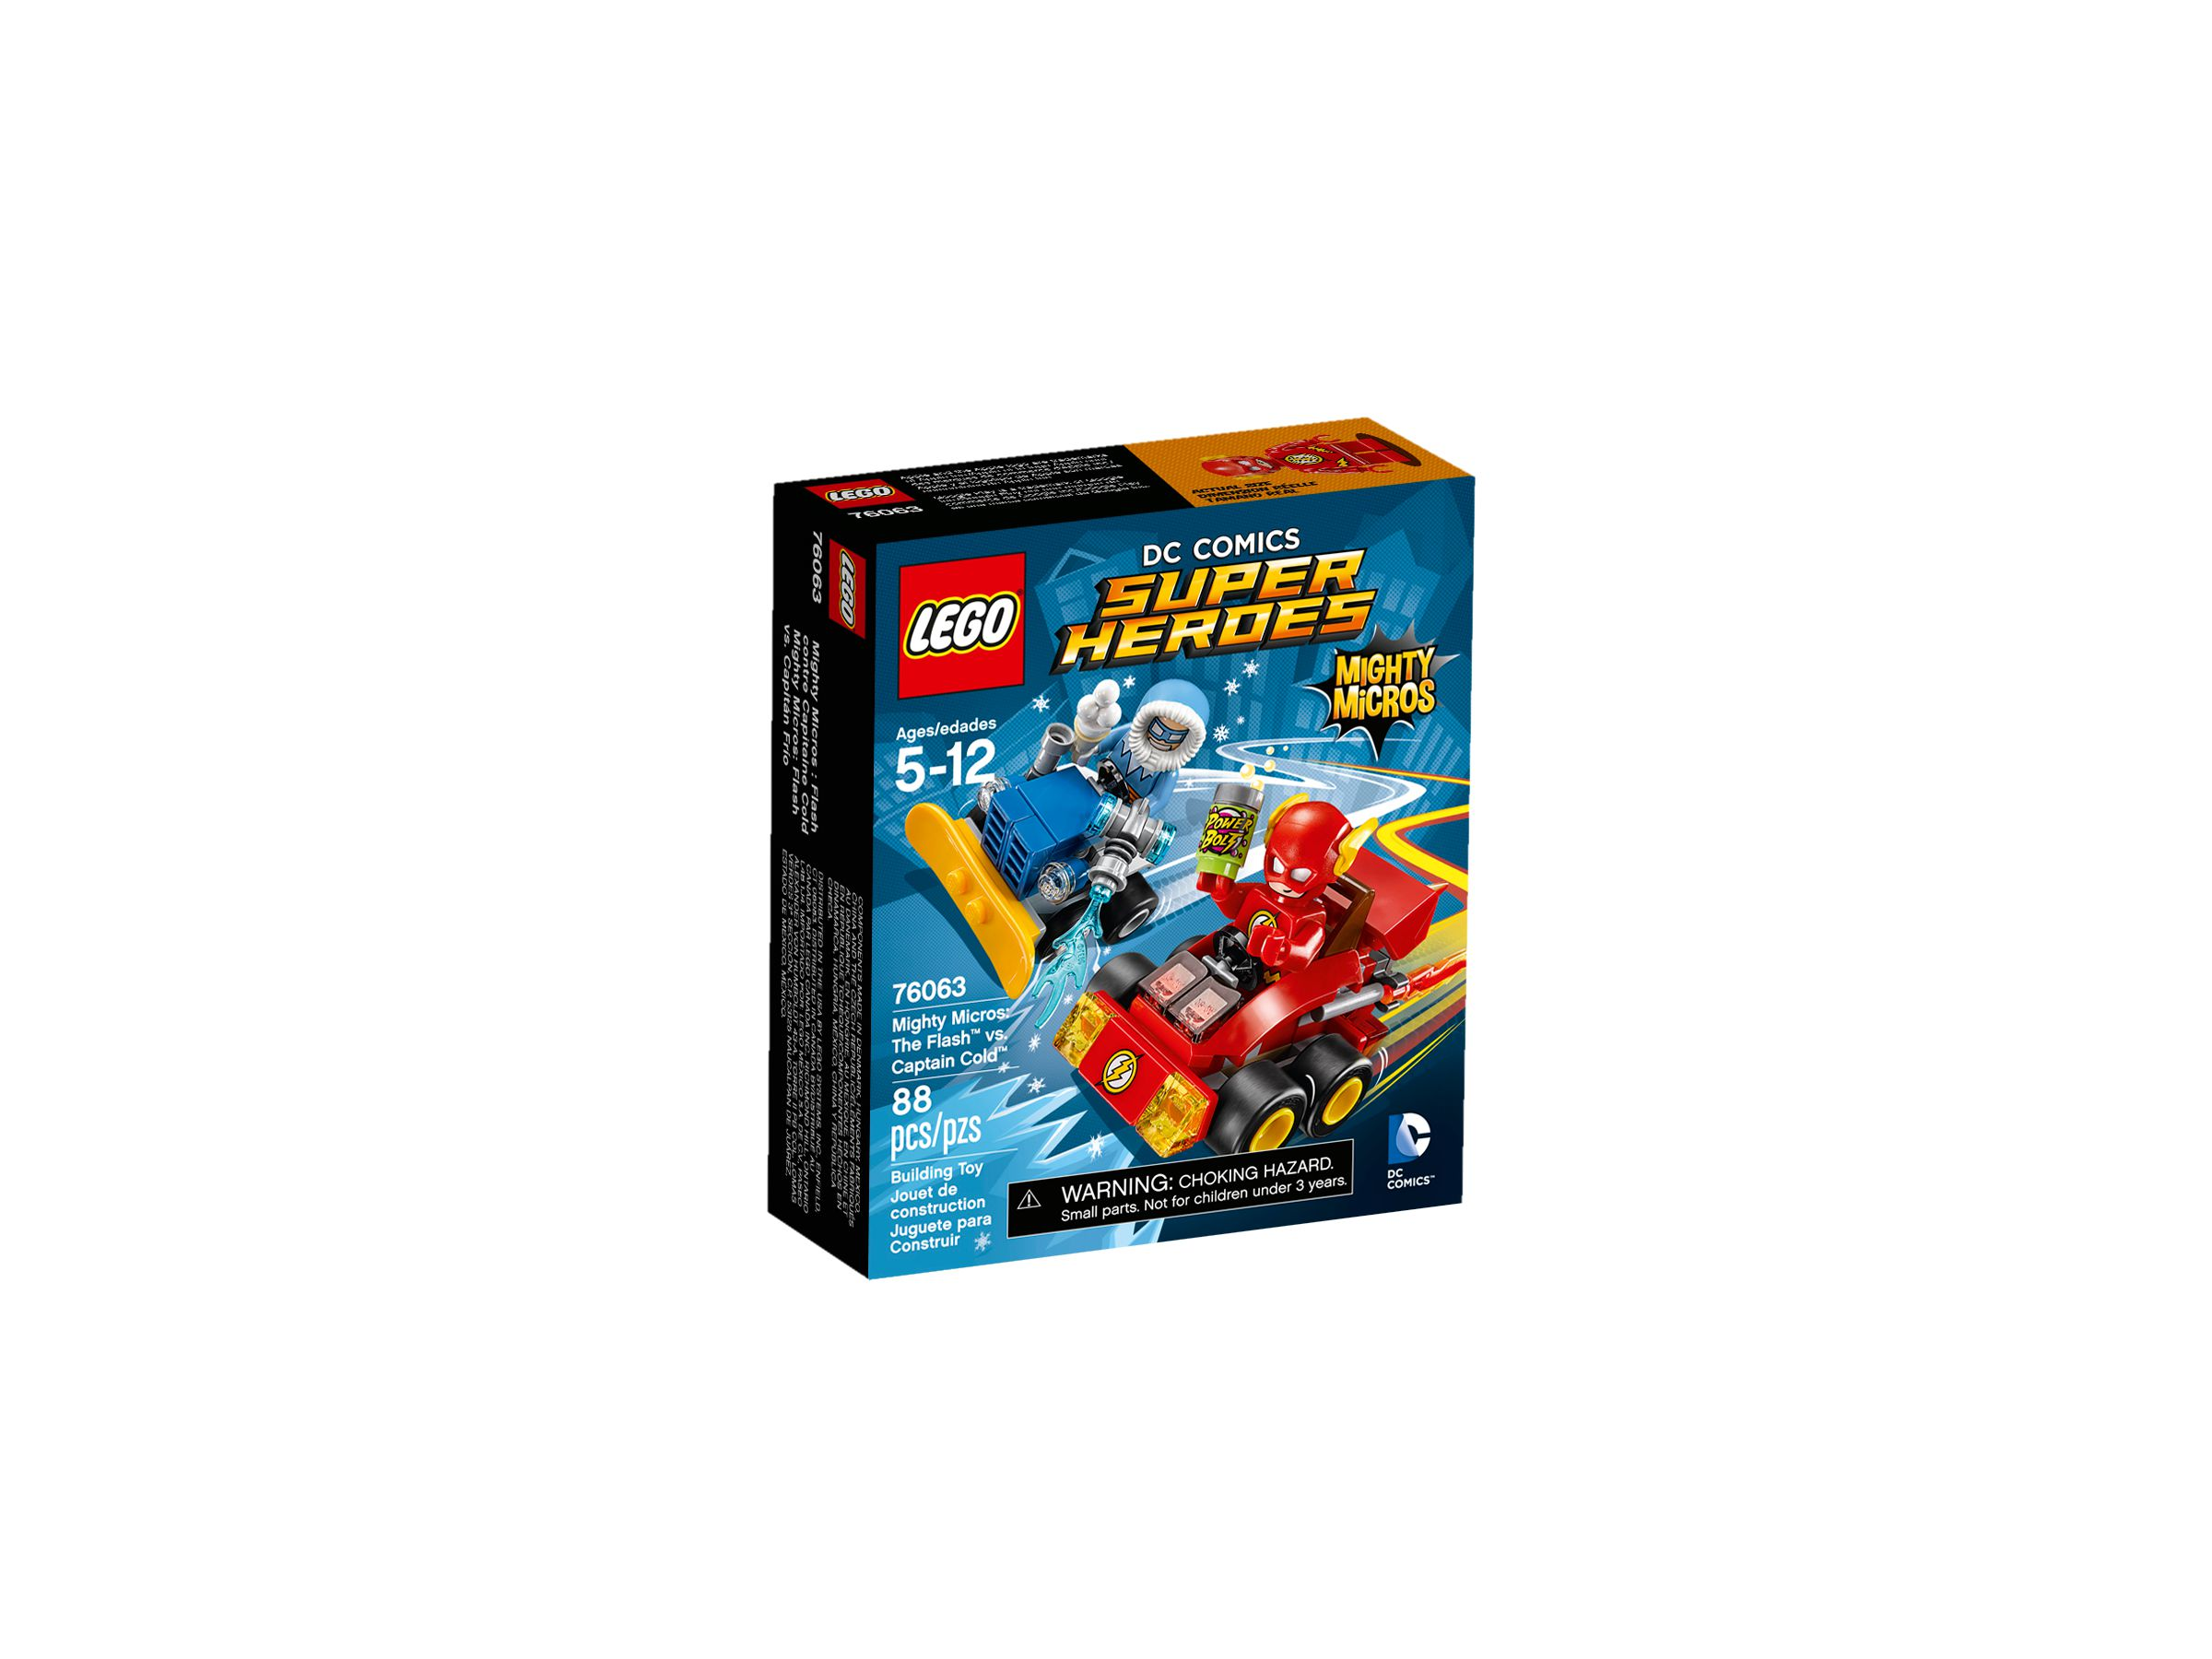 LEGO Super Heroes 76063 Mighty Micros: The Flash™ vs. Captain Cold™ LEGO_76063_alt1.jpg